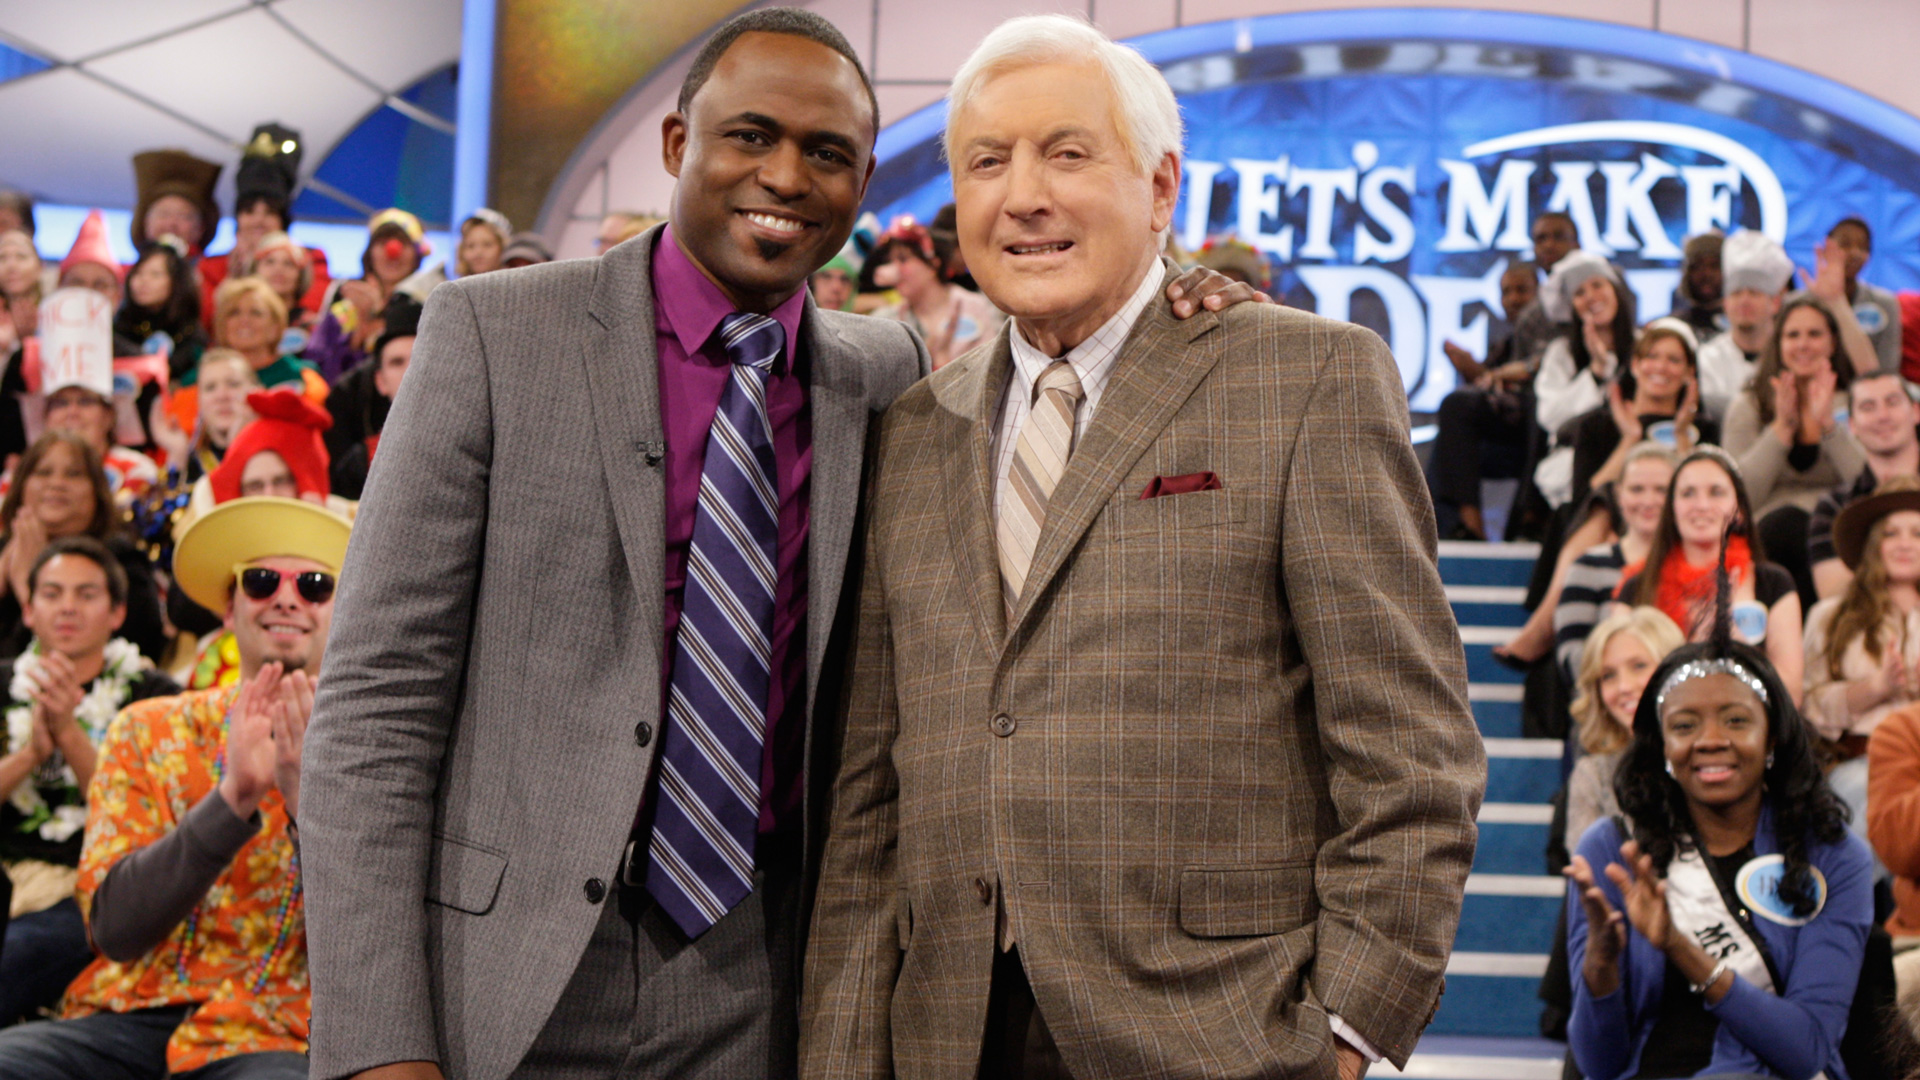 Current host Wayne Brady and Monty Hall posed together during an episode of Let's Make A Deal.